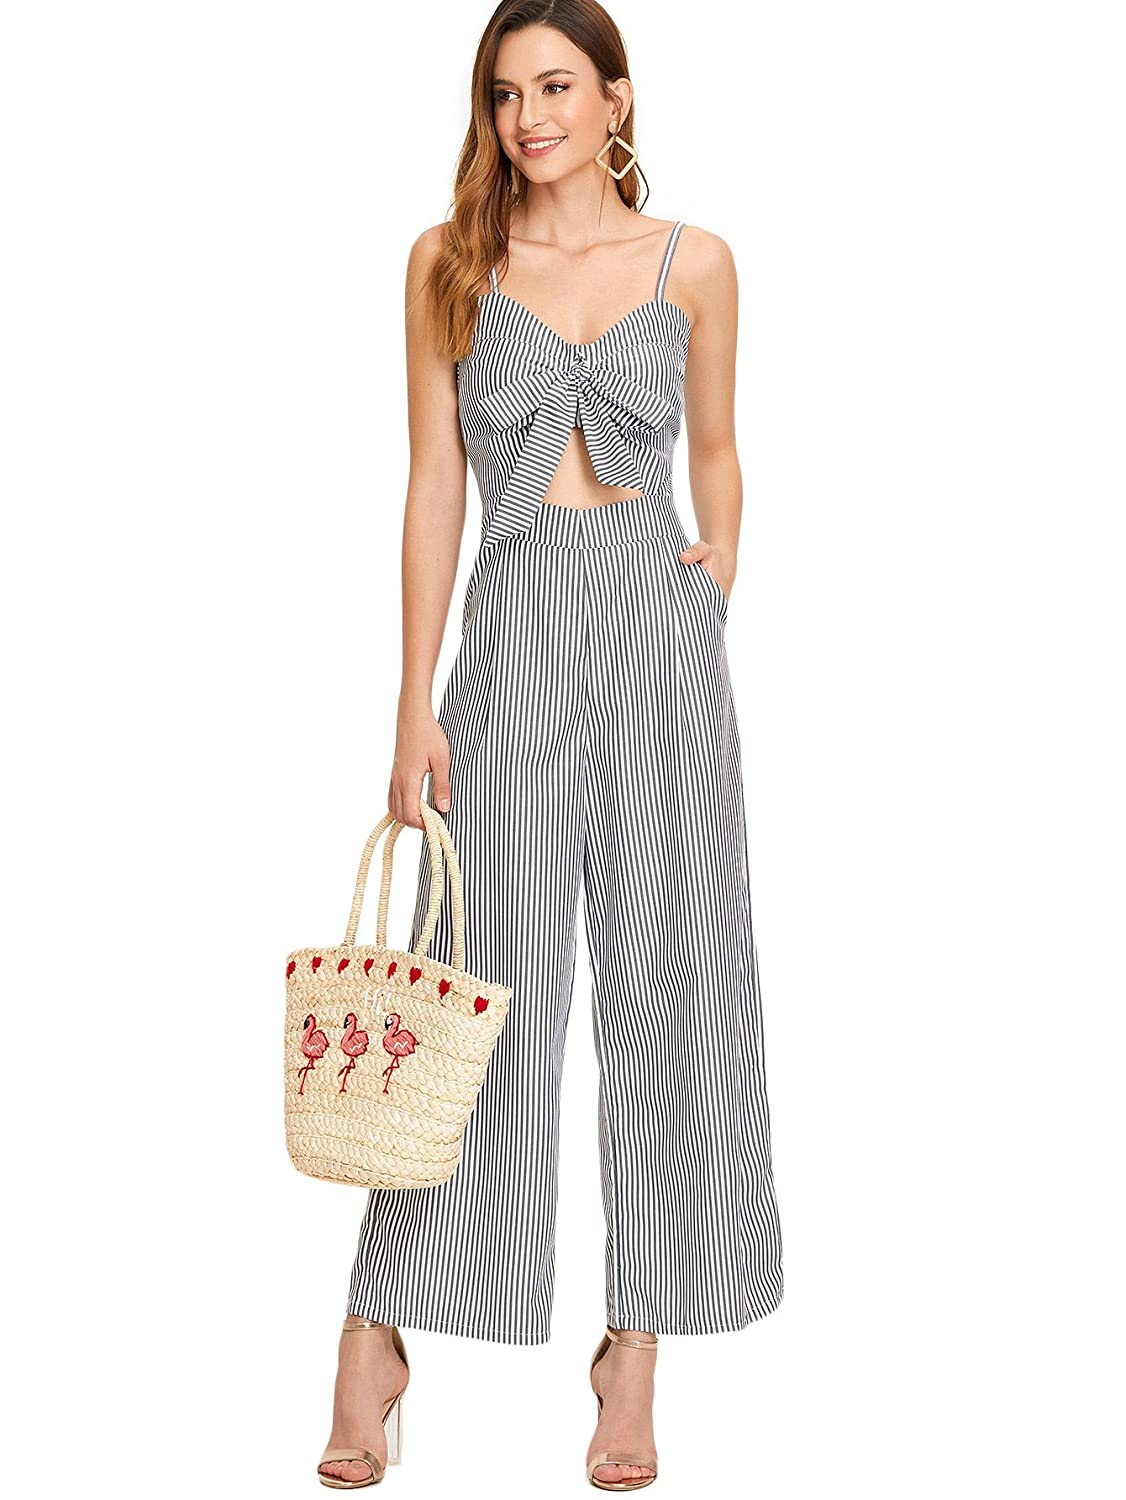 17f60ed7e71 Amazon.com  Floerns Women s Knot Front High Waist Wide Leg Striped Jumpsuit  Romper Grey XL  Clothing